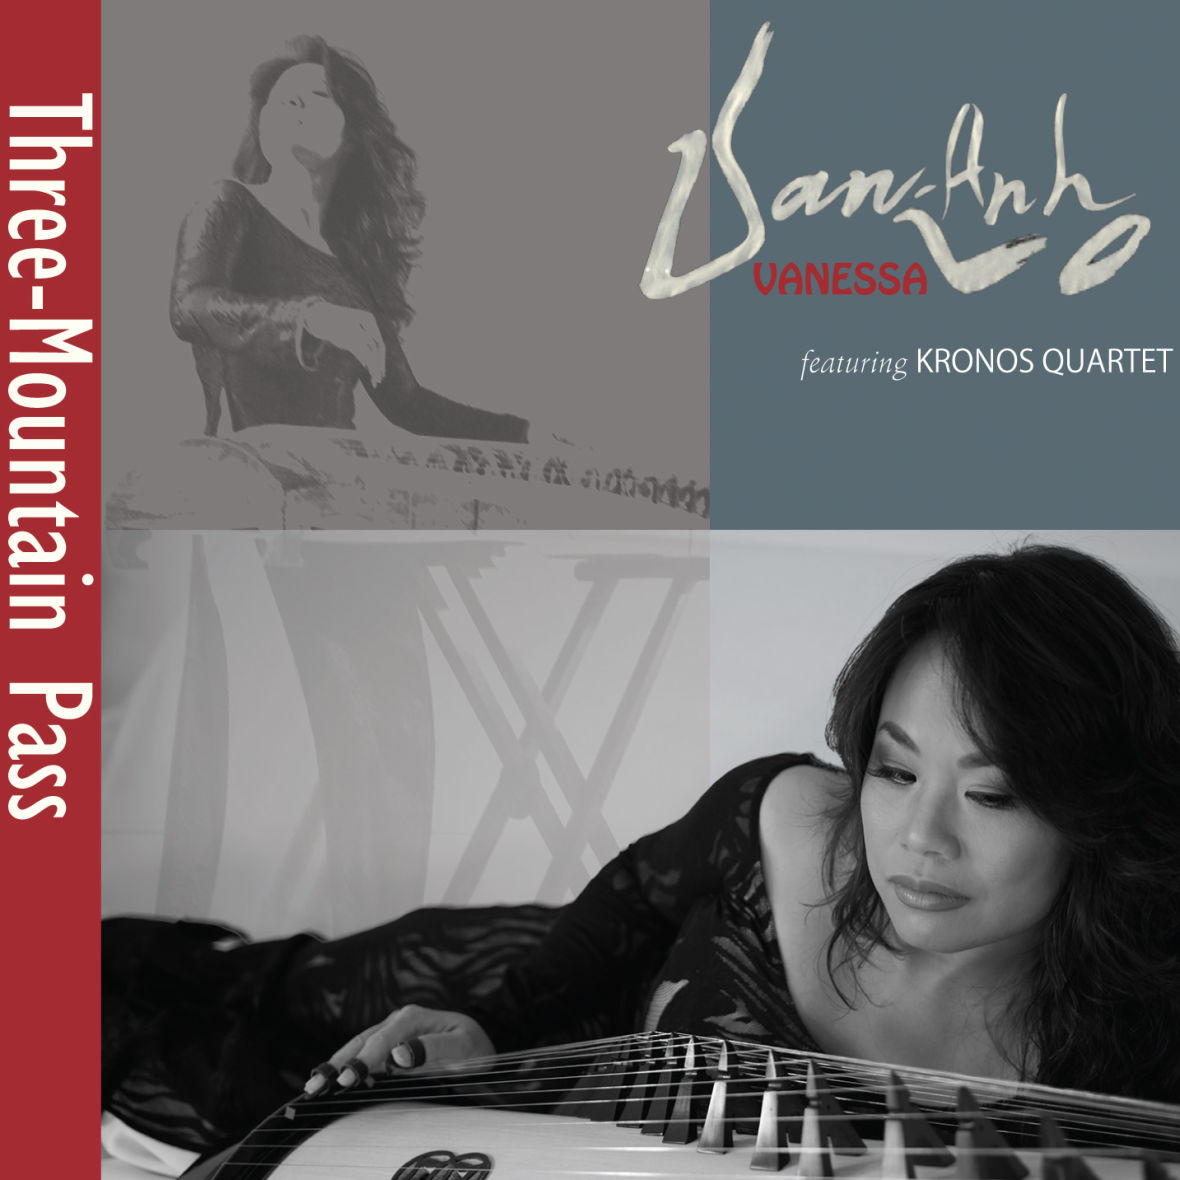 Van-Anh Vo Album with Kronos Quartet